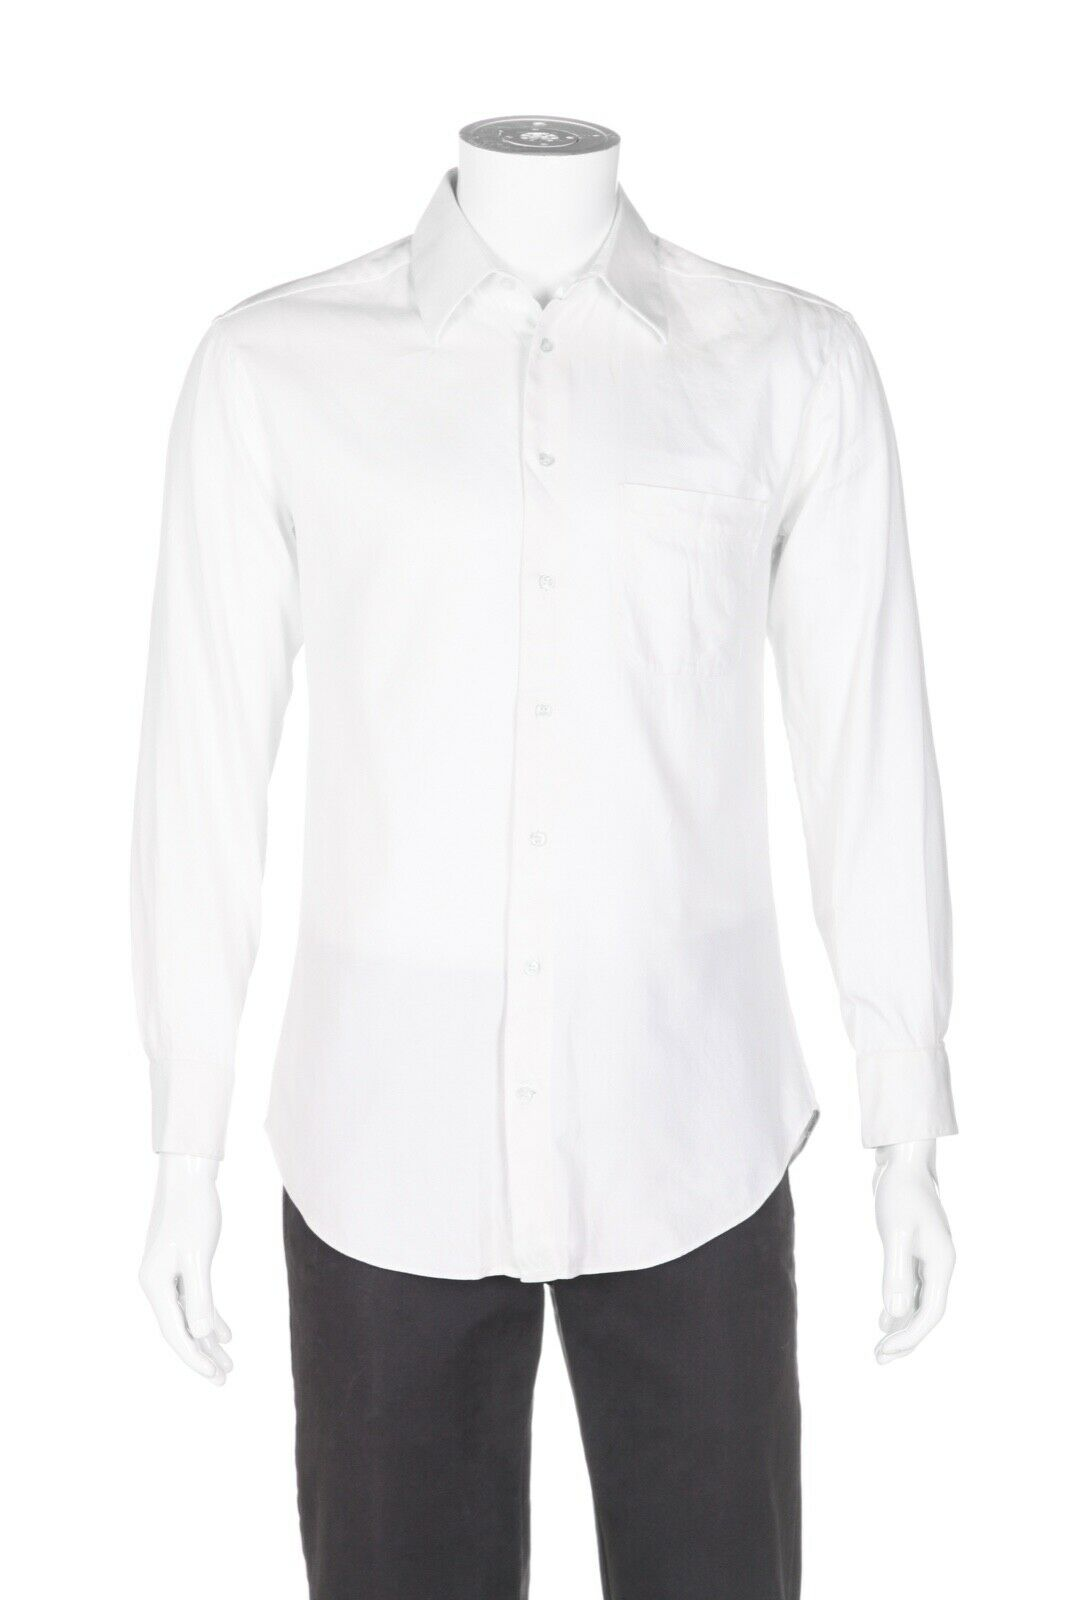 ARMANI COLLEZIONI Men's Dress Shirt Size 15